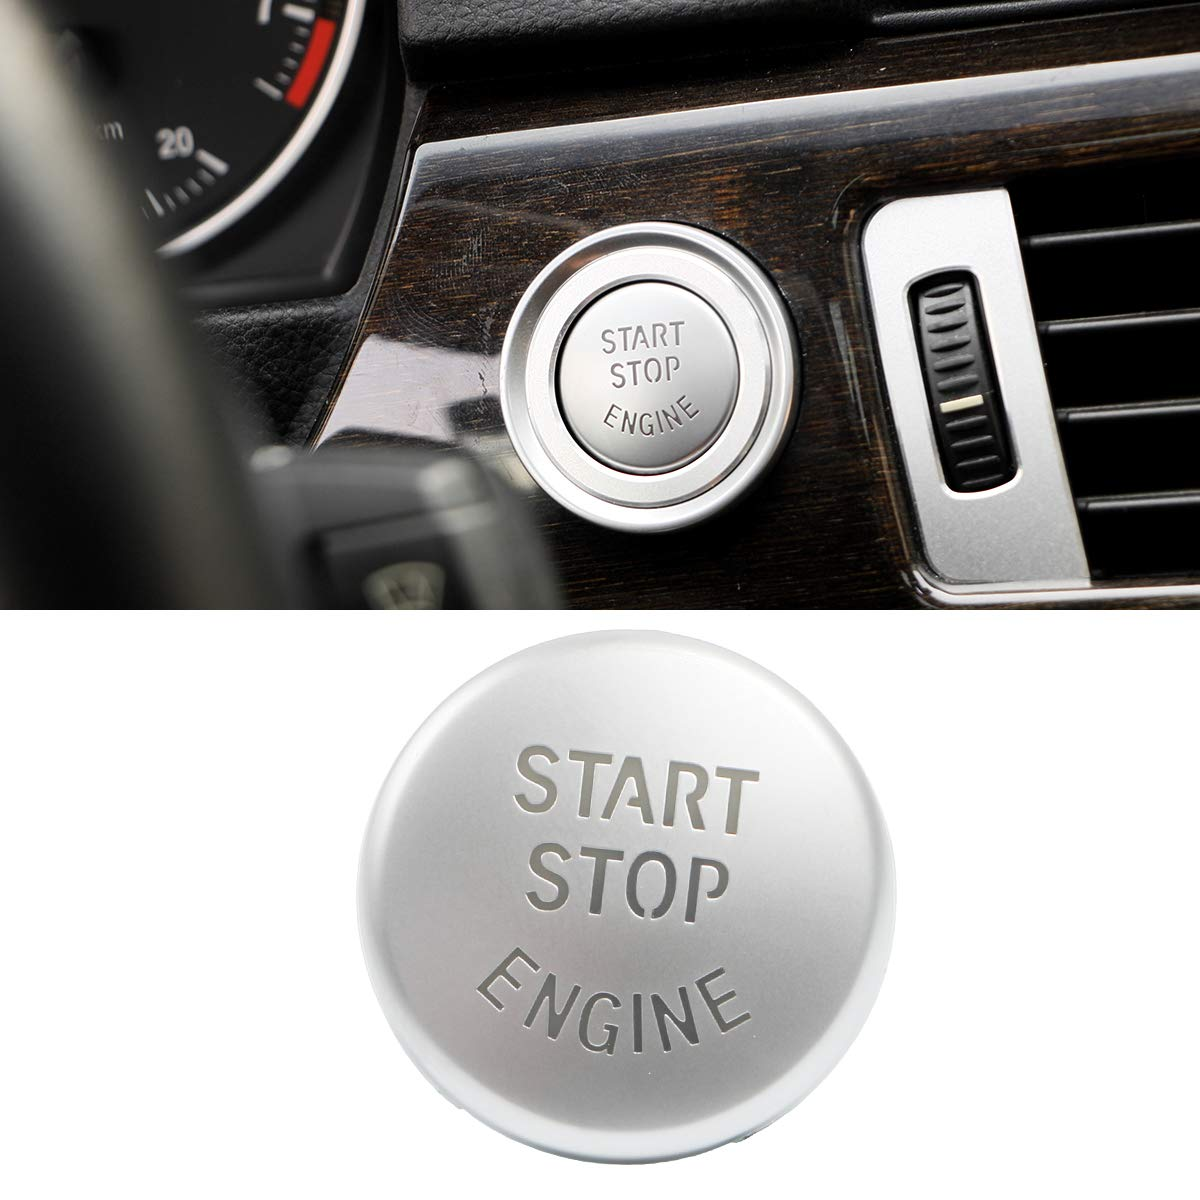 Fits: BMW 1 2 3 4 5 6 7 X1 X3 X4 X5 X6 Series 2010-2016 Chrome-plated Start Stop Engine Switch Button For BMW,Jaronx Engine Power Ignition Start Stop Button Replacement